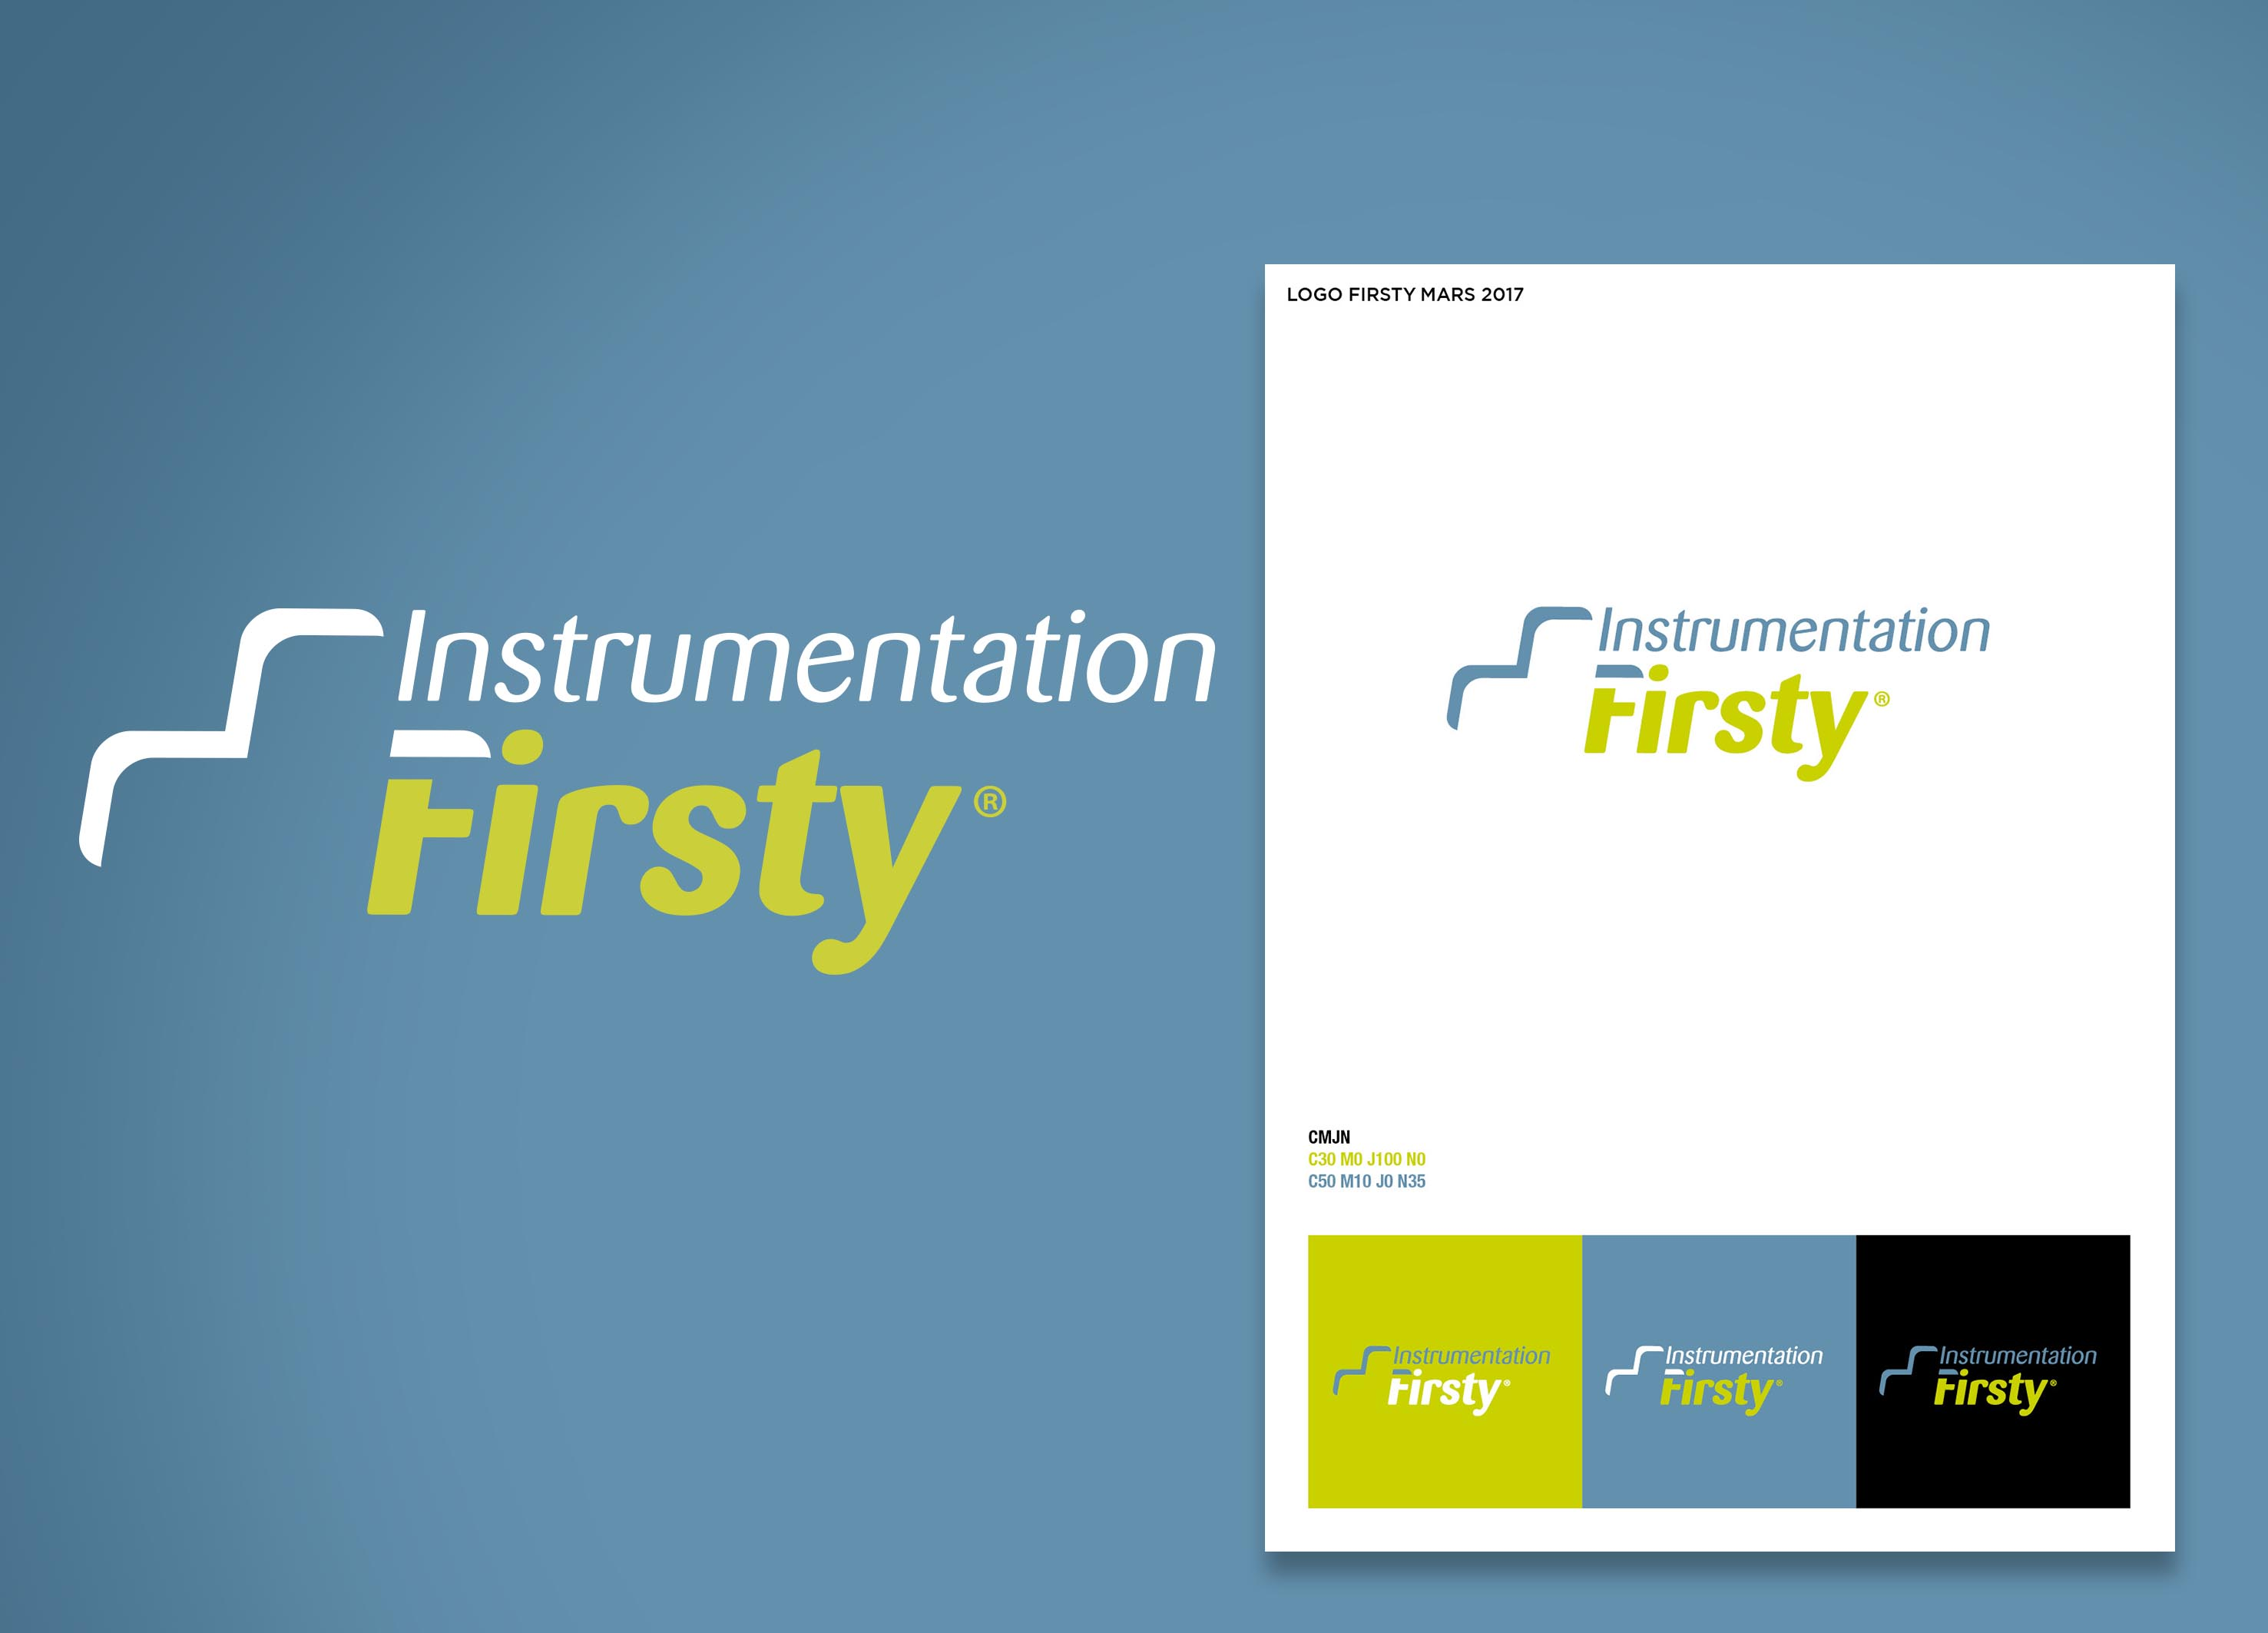 FIRSTY INSTRUMENTATION